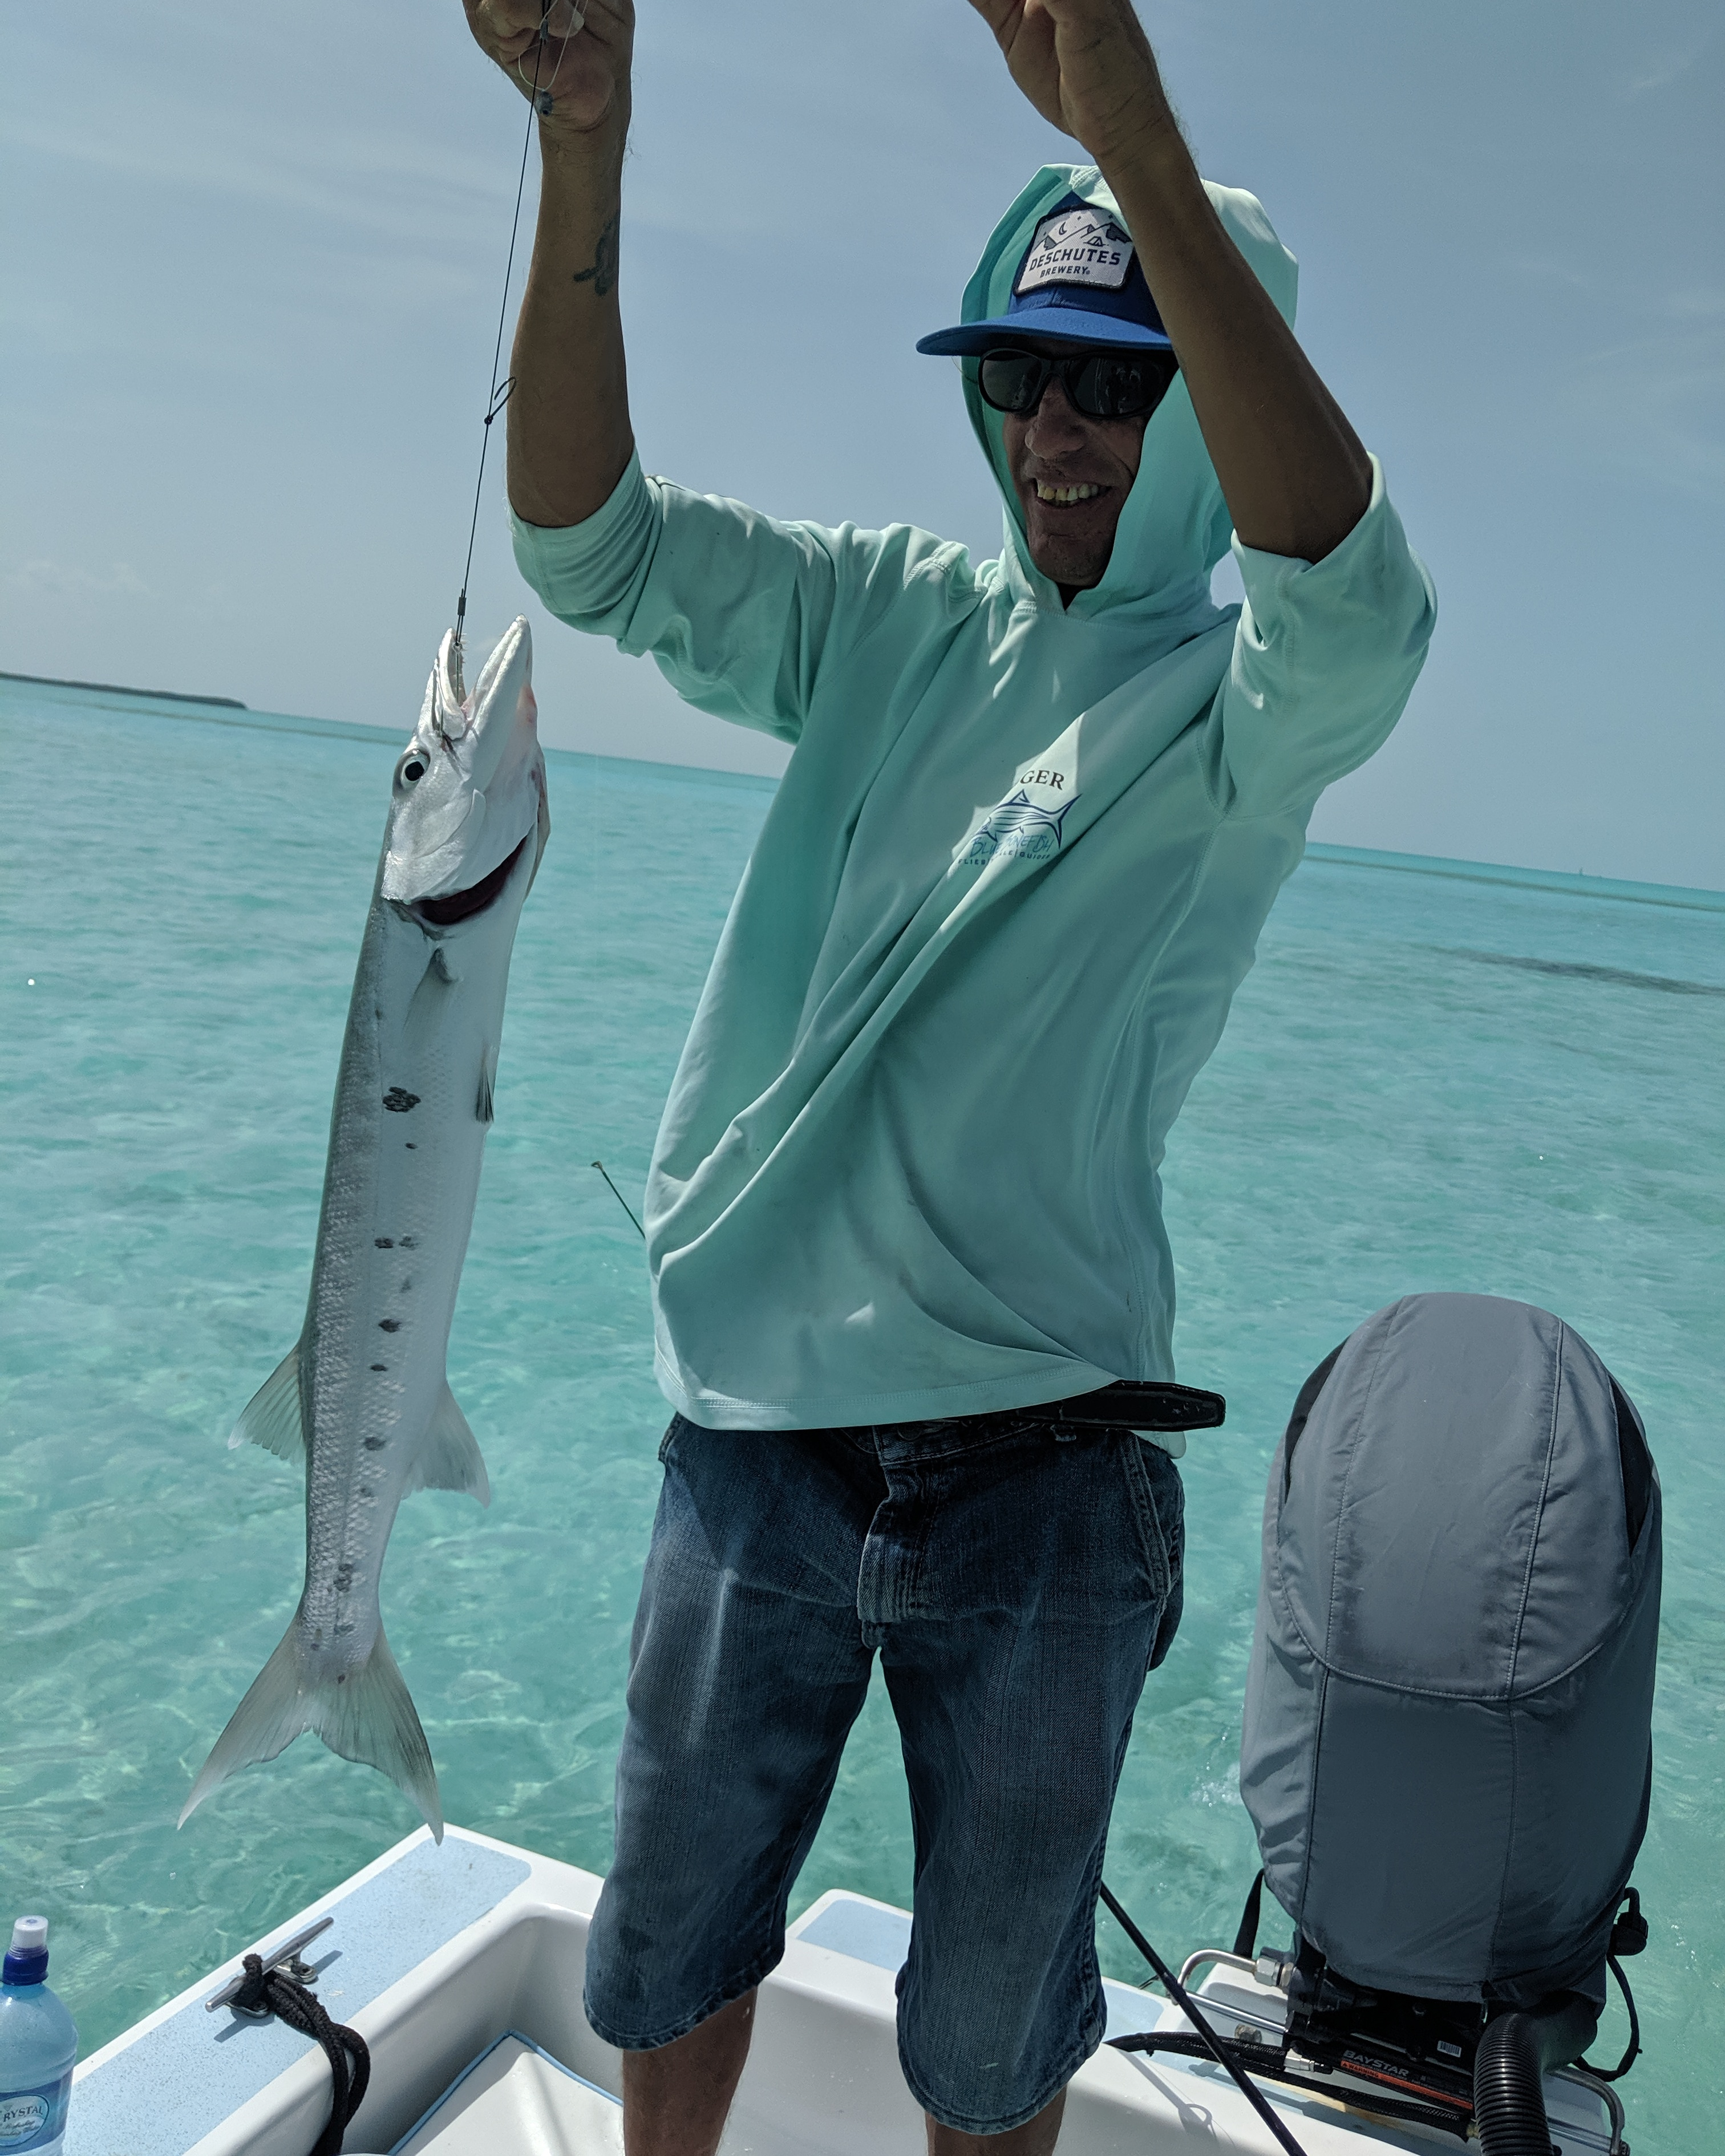 Go fishing! Barracuda style